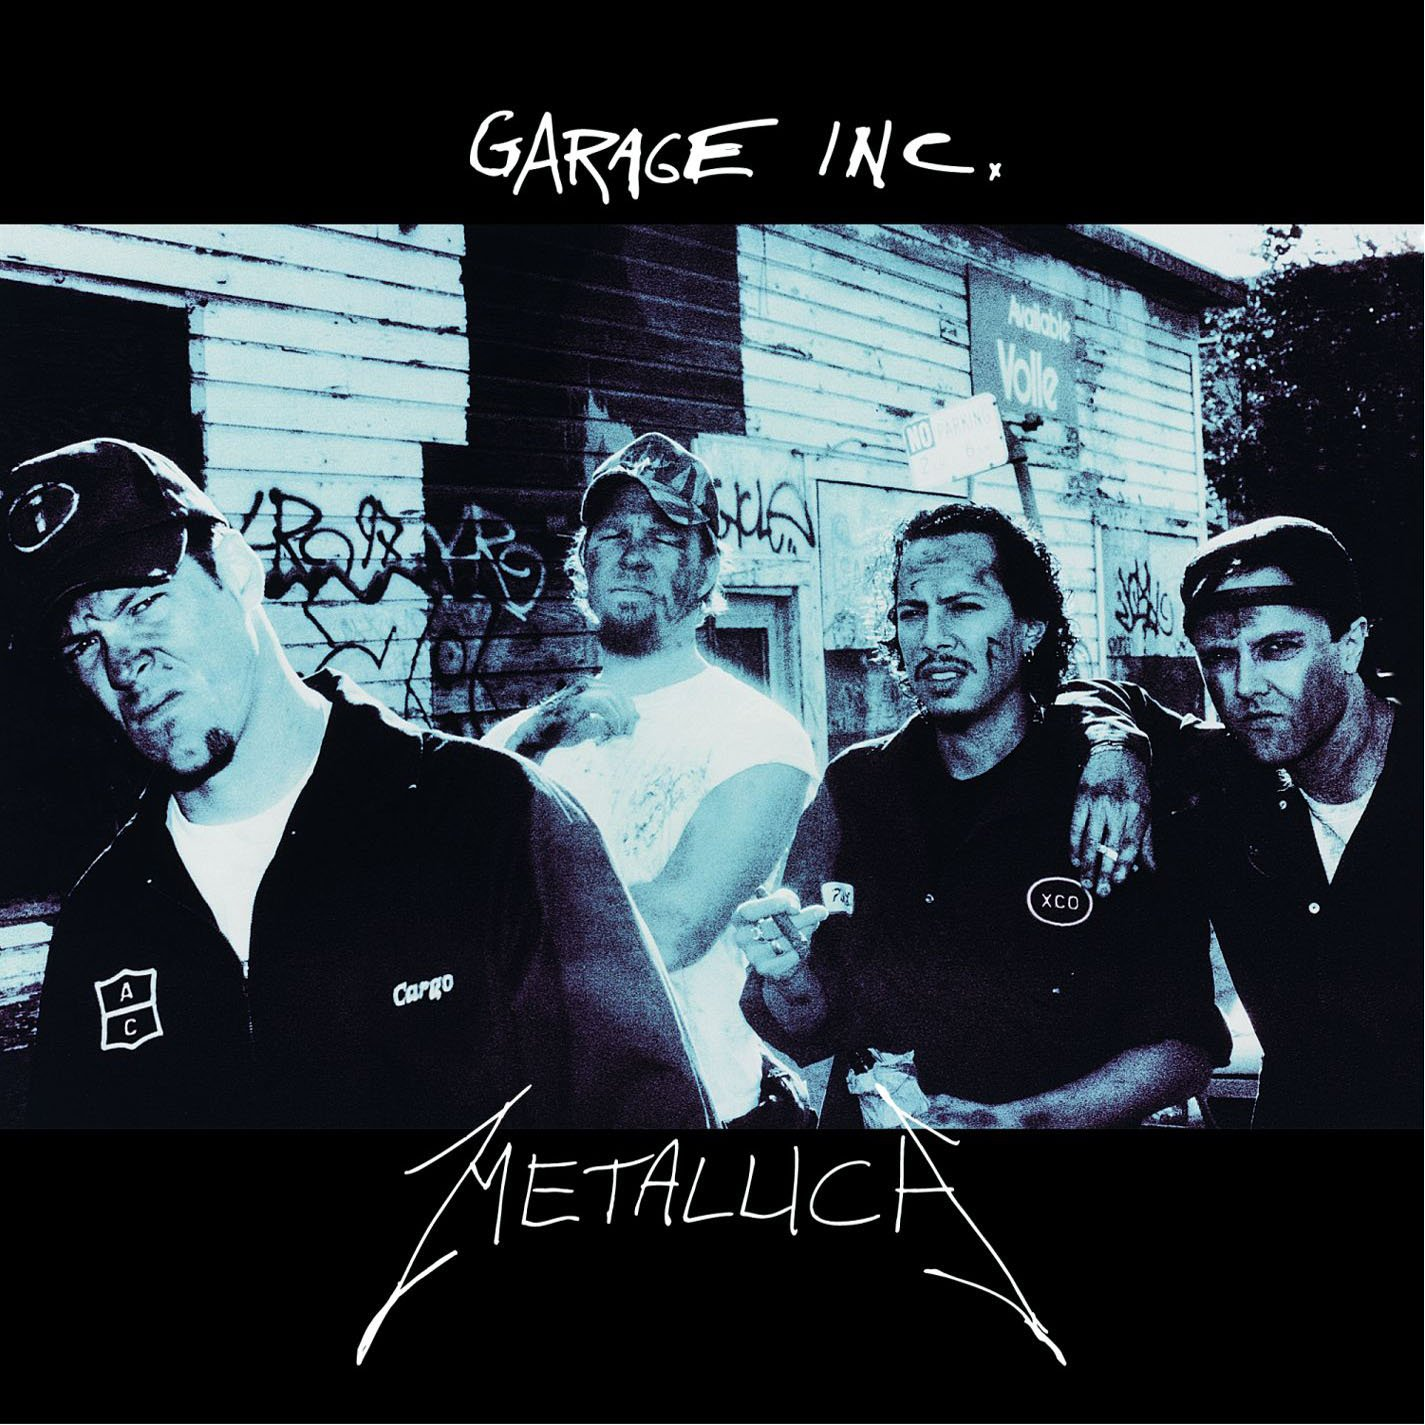 CD : Metallica - Garage Inc. (2 Disc)